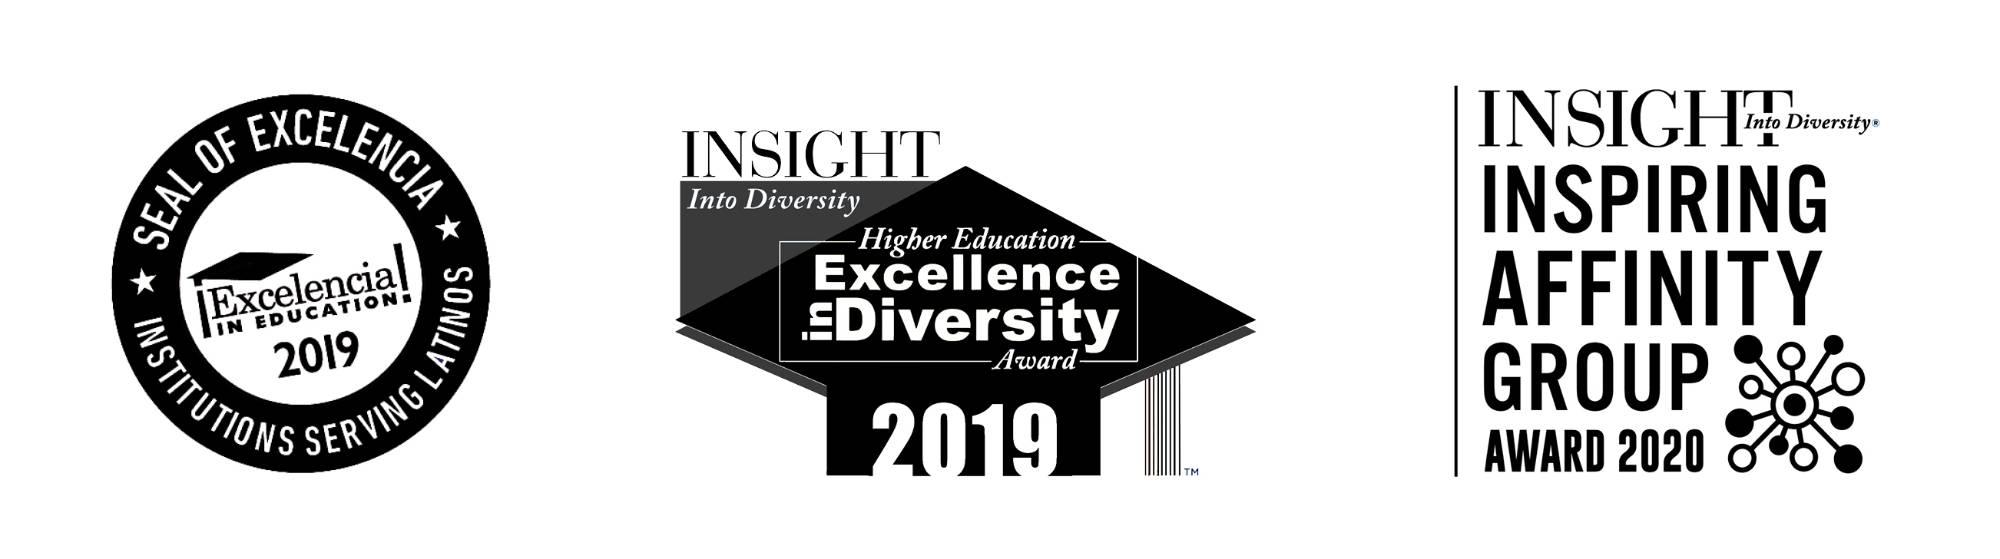 2019 Seal of Excelencia, 2019 Insight Into Diversity Higher Edcuation Excellence in Diversity Award, 2020 Insight Into Diversity Inspiring Affinity Group Award